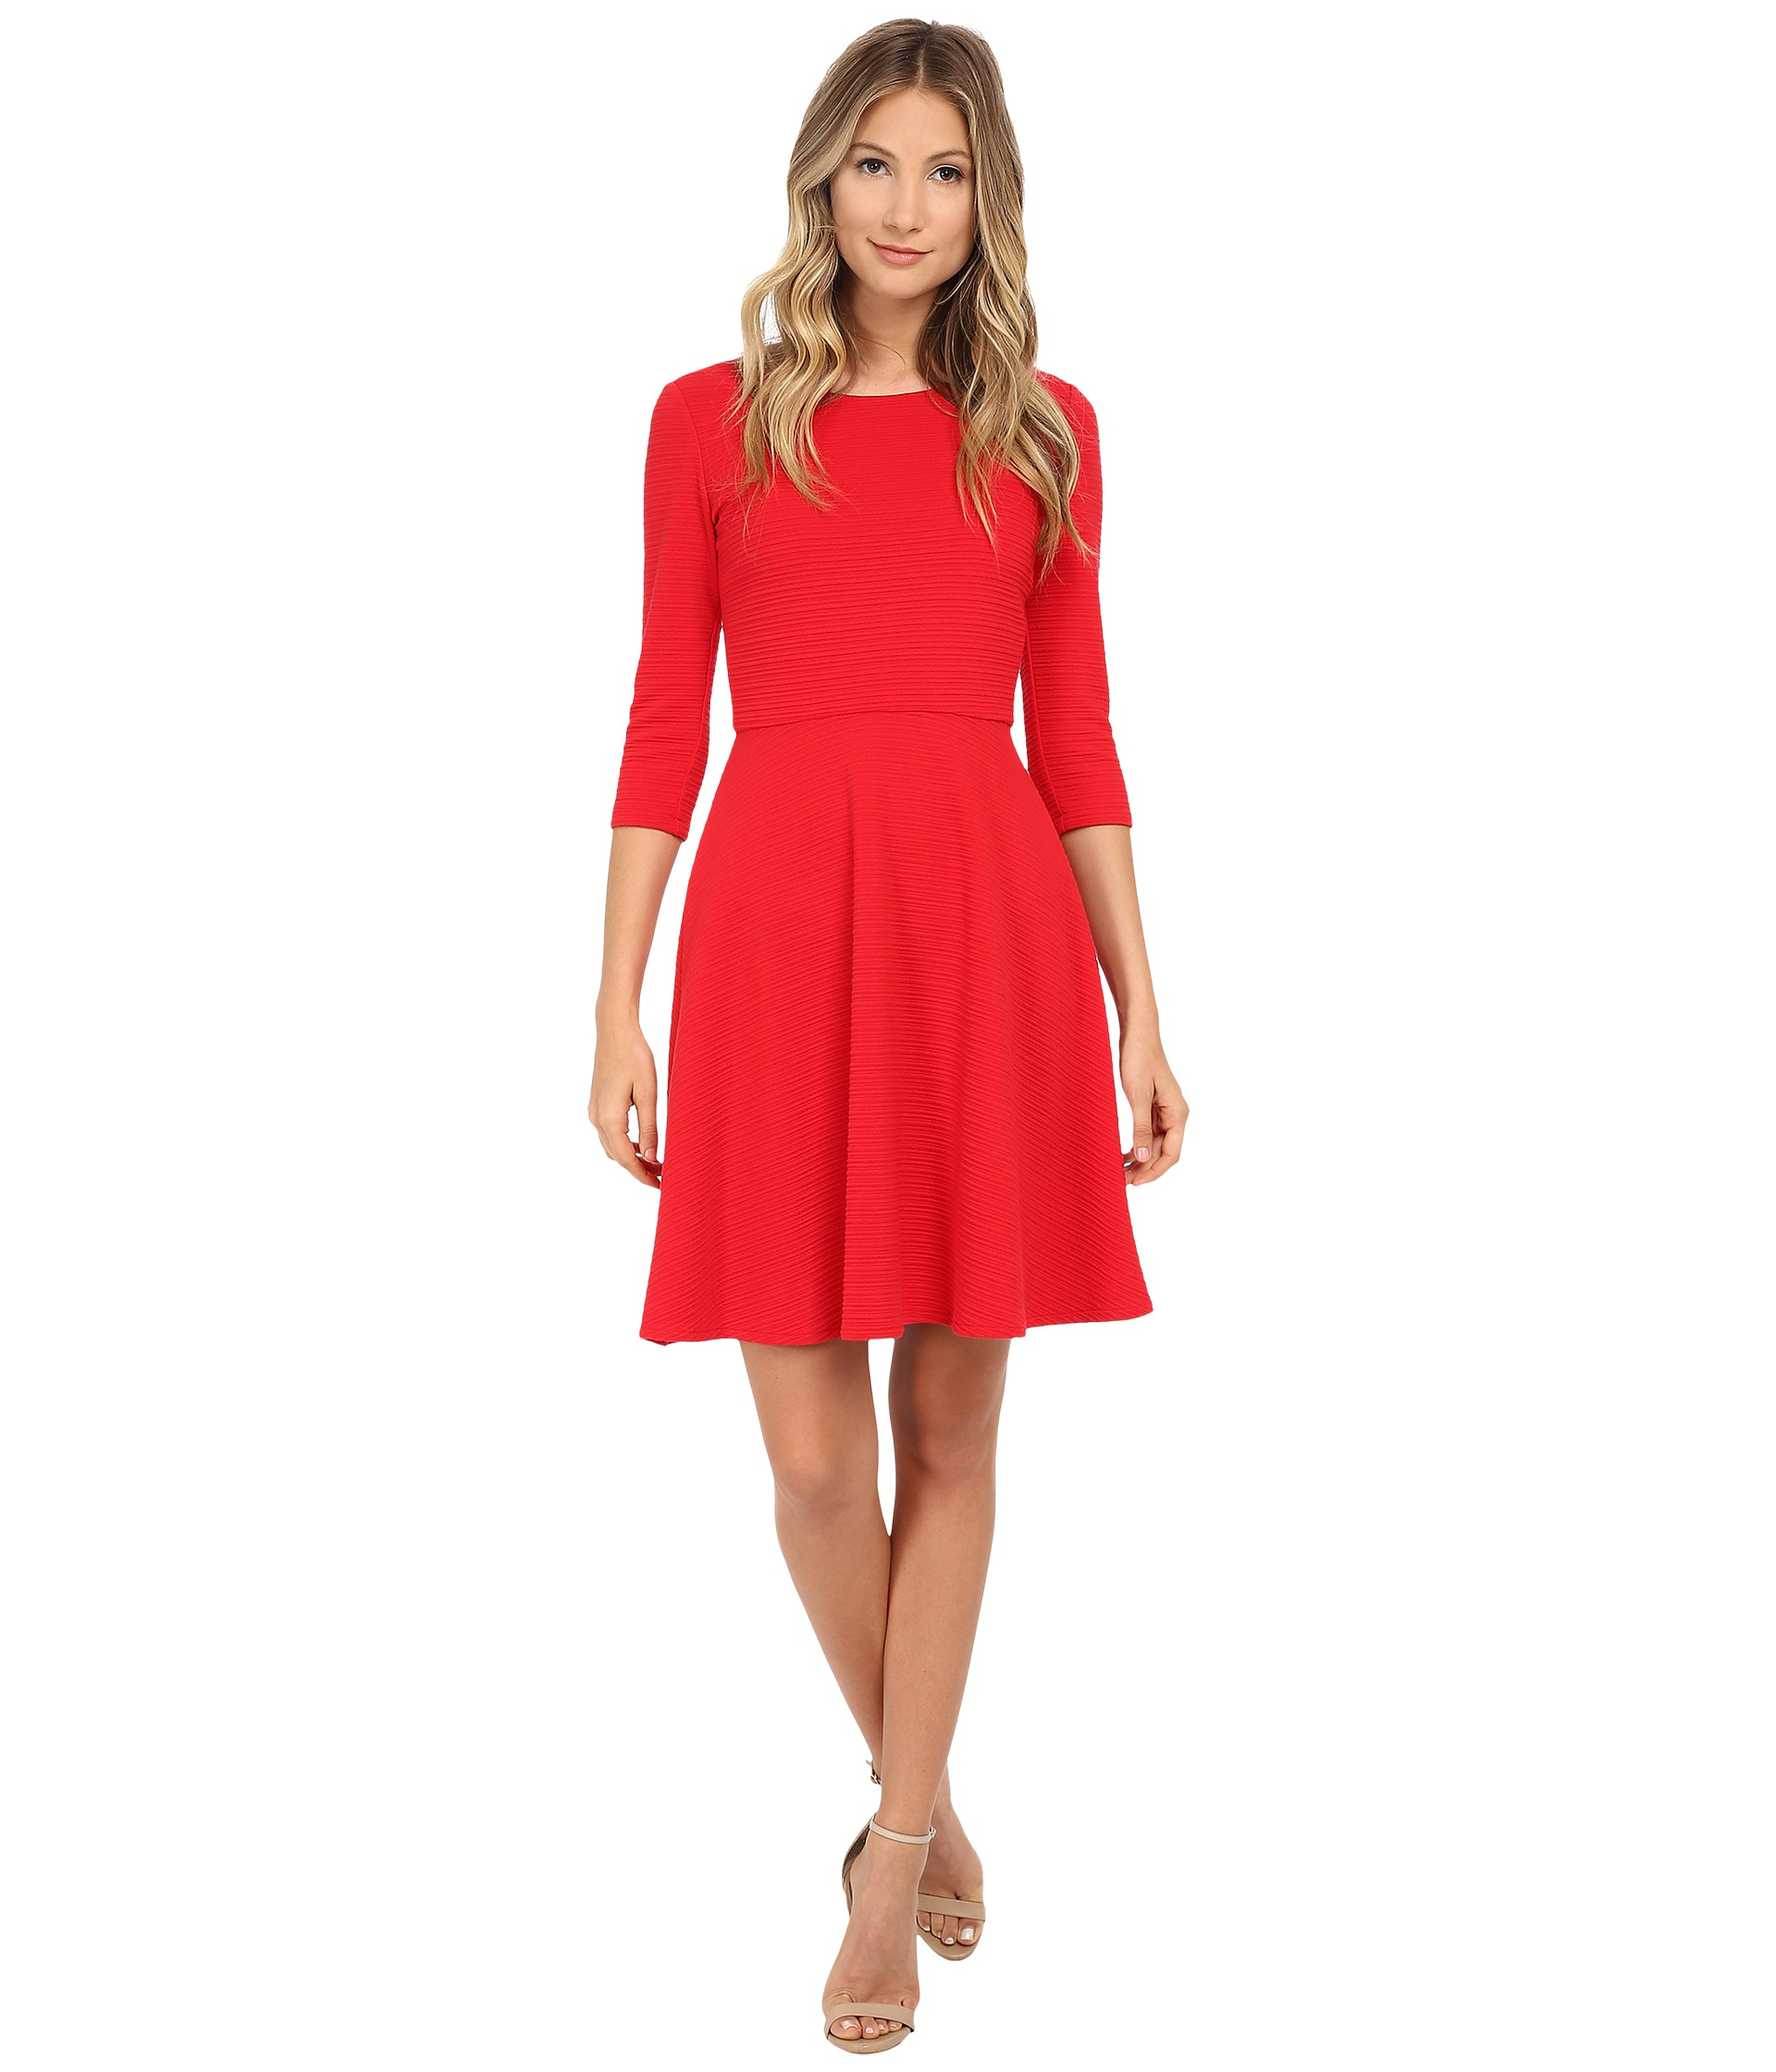 Lyst  Donna Morgan 34 Sleeve Wavy Knit Fit And Flare Dress in Red